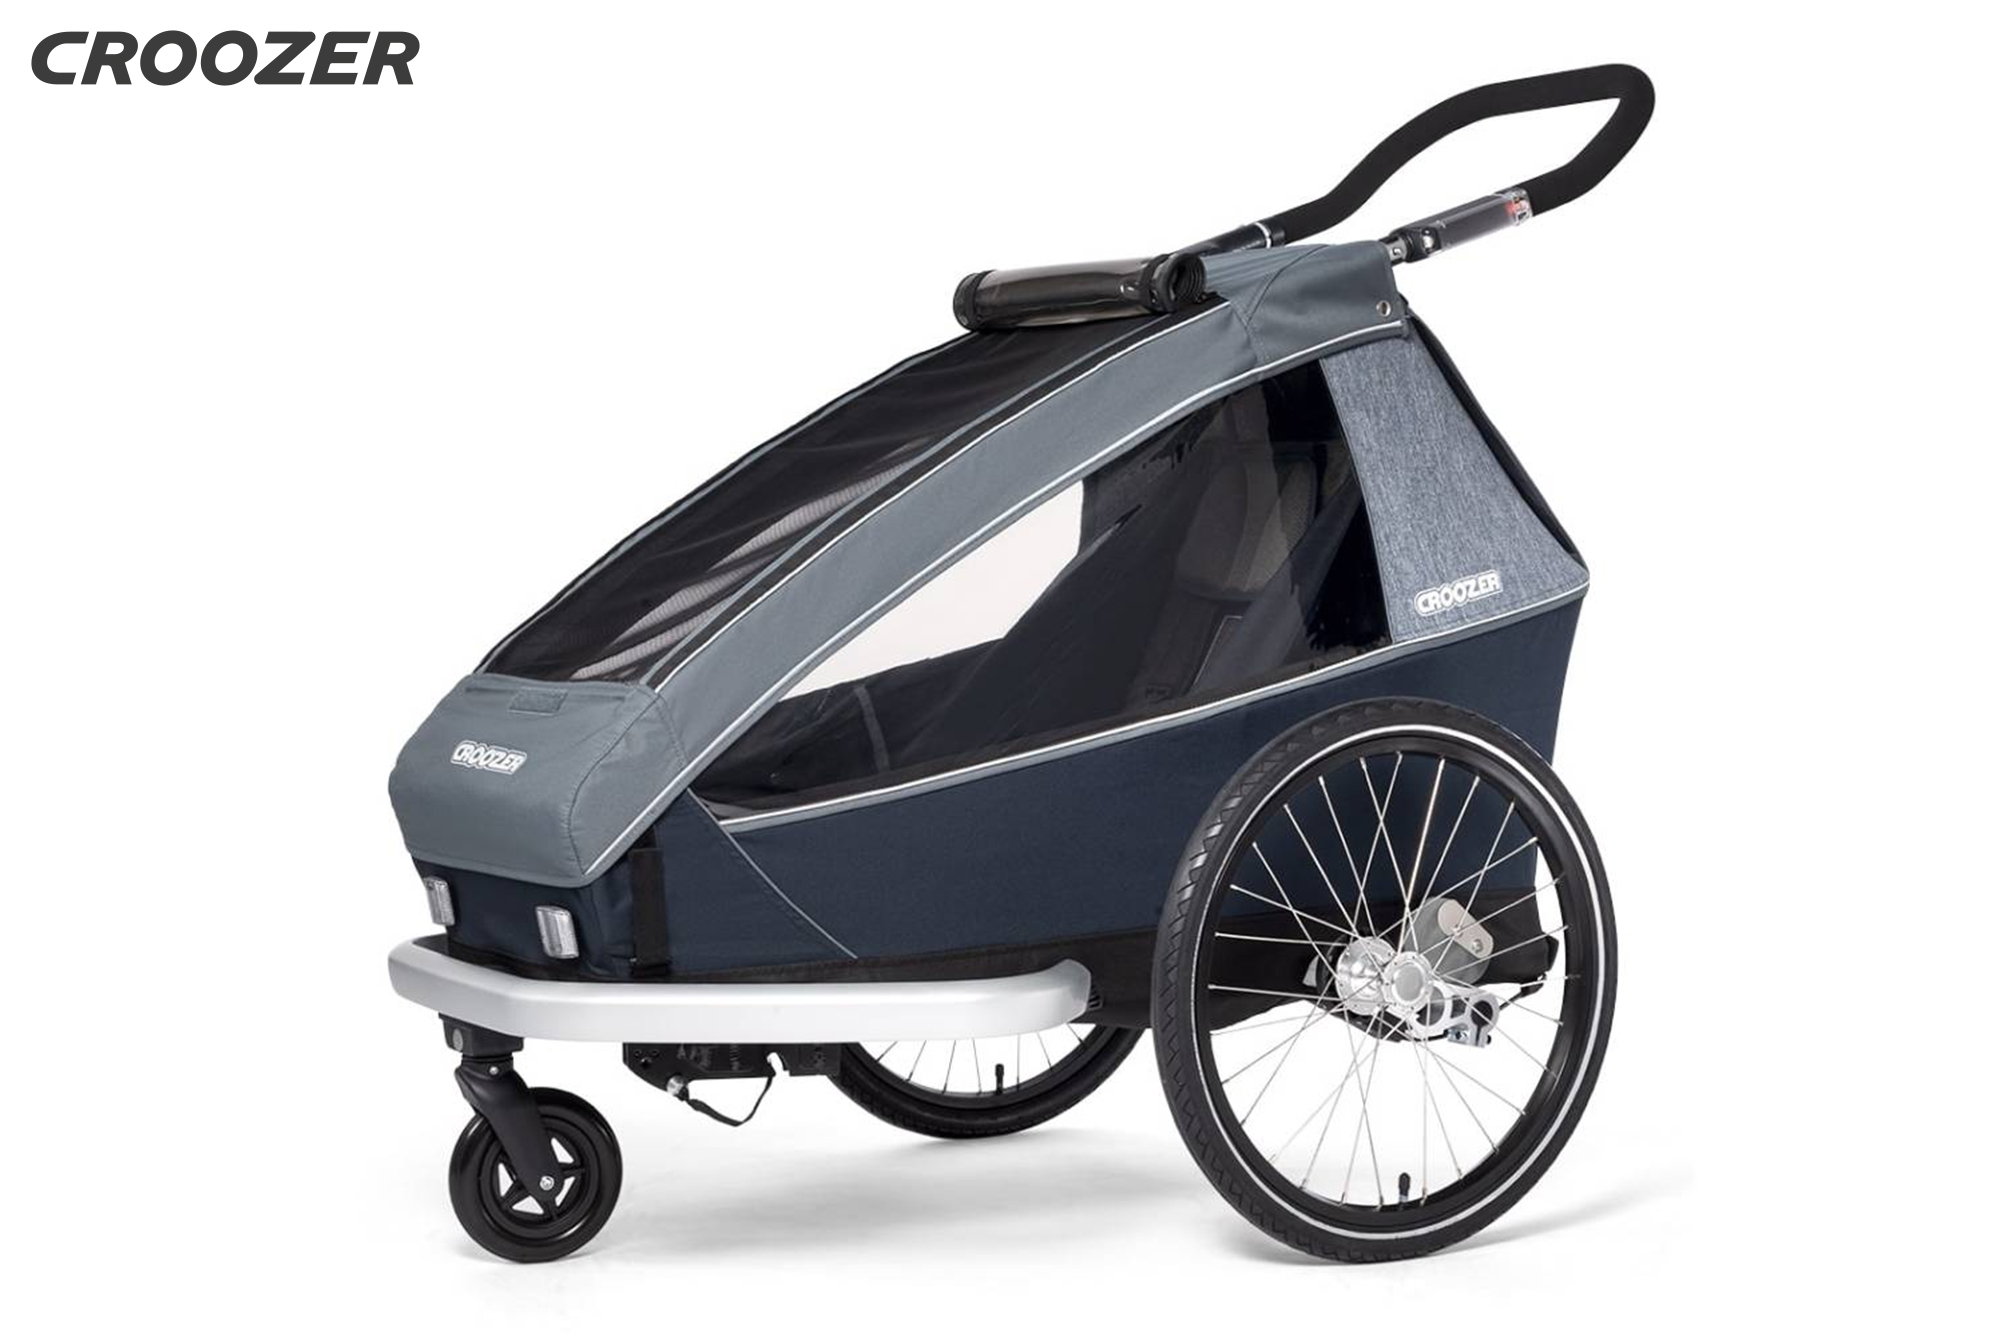 CROOZER Kid Vaaya 1, graphite blue - Kindertransportanhänger